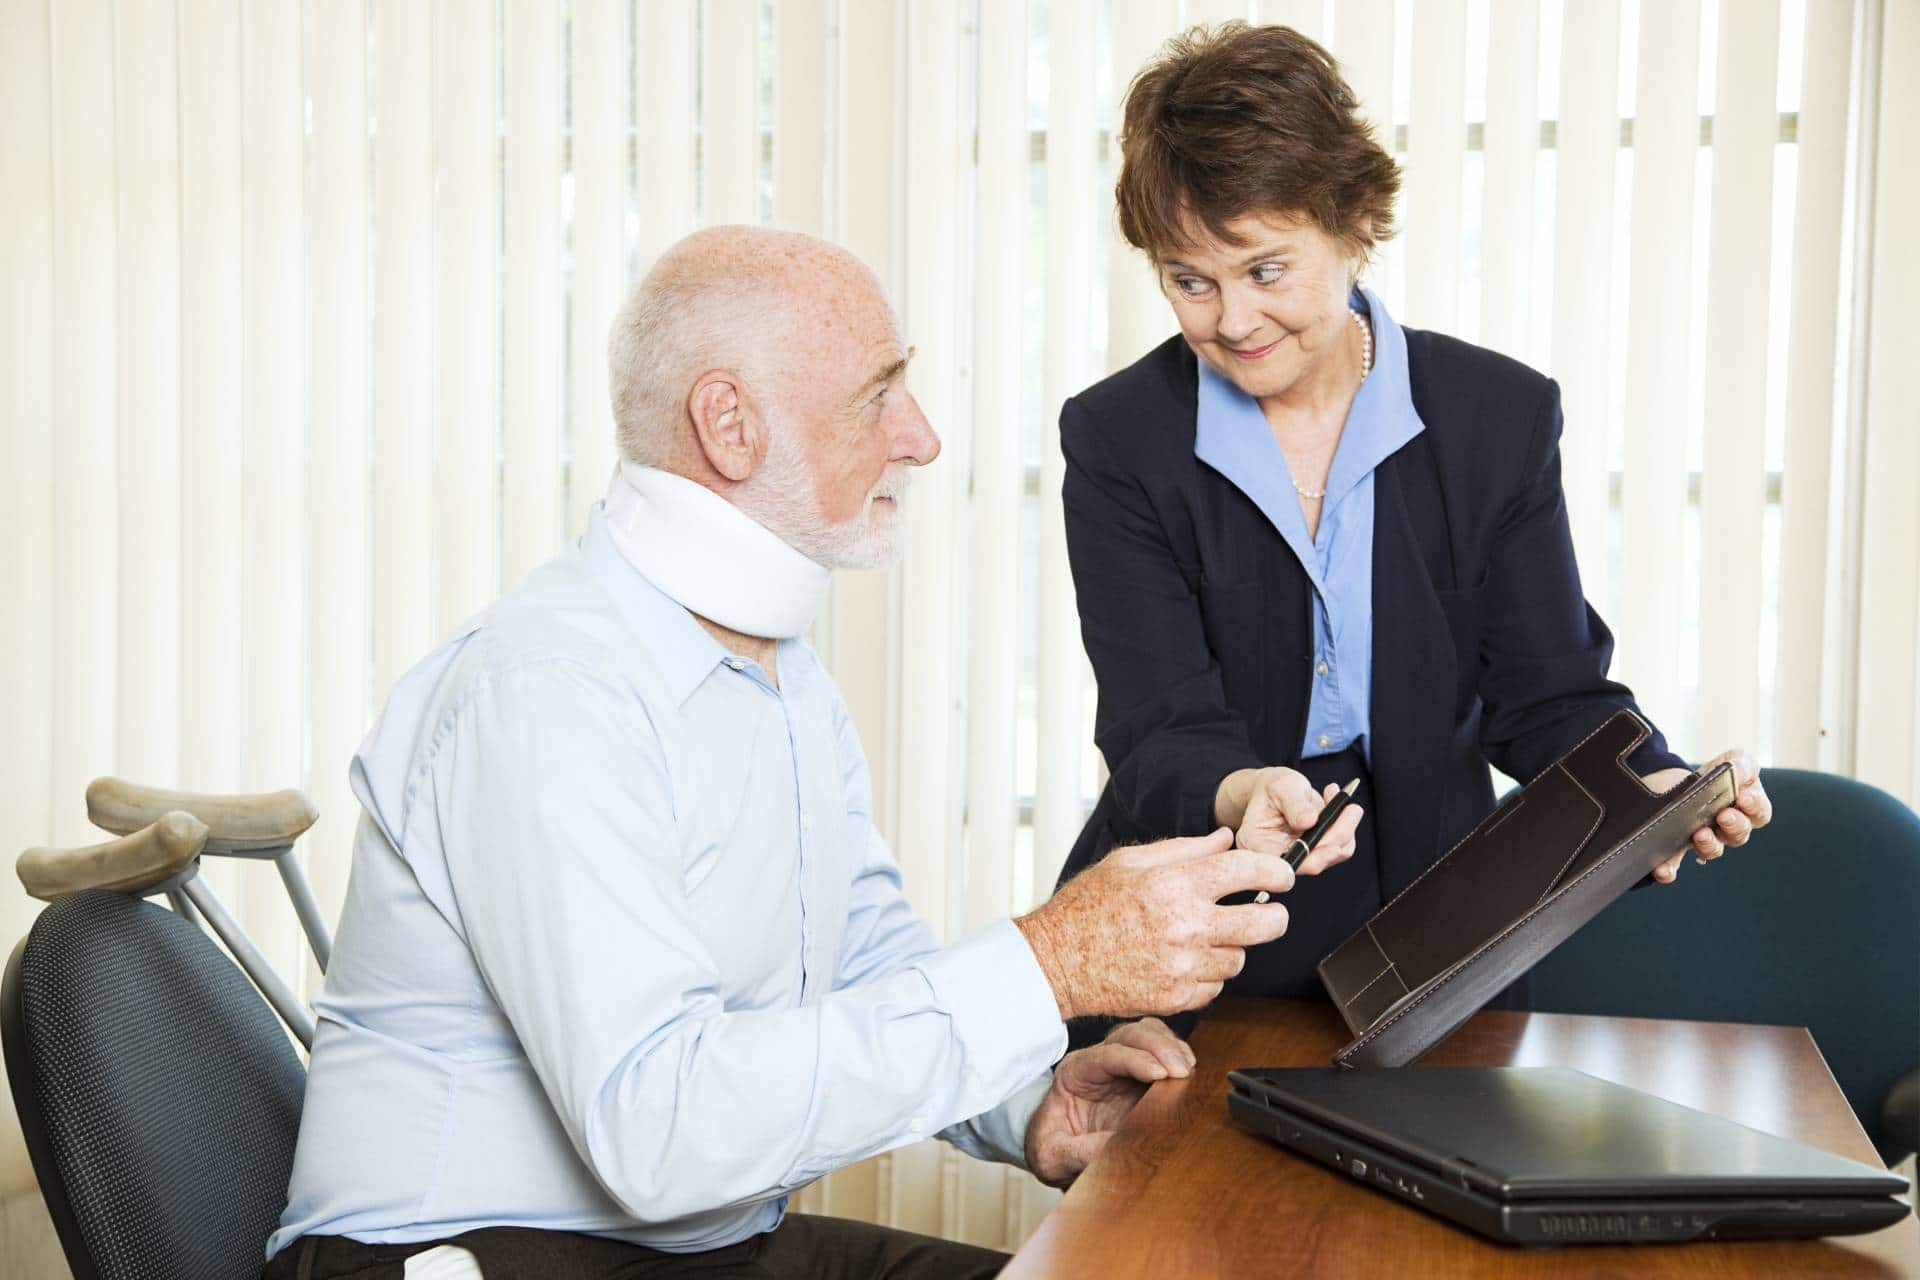 Schedule a free consultation with our personal injury lawyers at the Angell Law Firm in Milton, GA